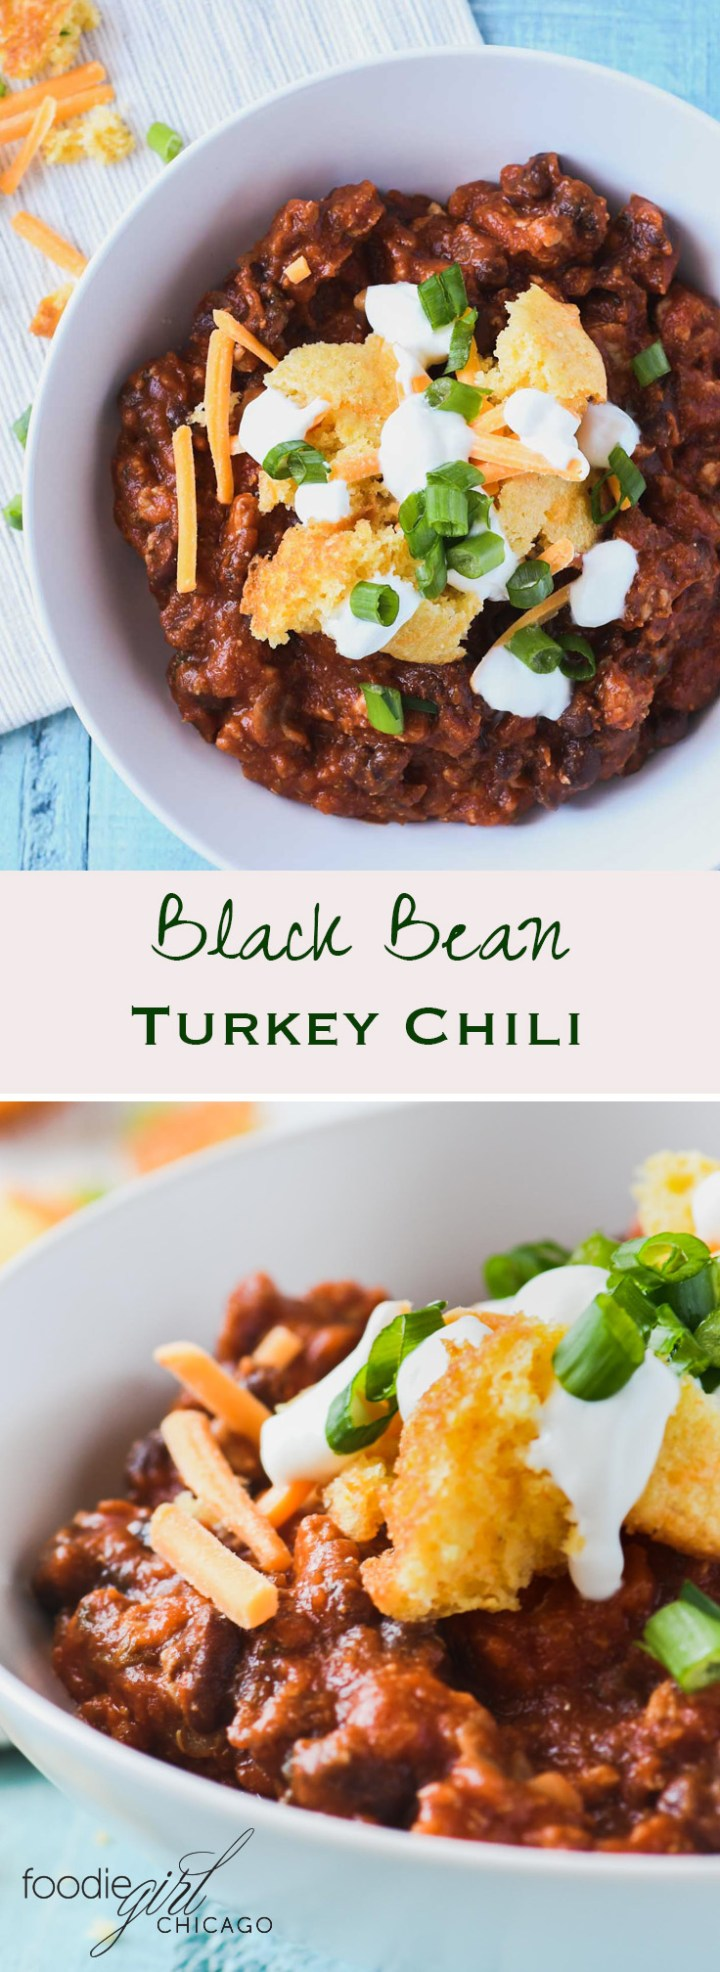 This healthy turkey chili recipe is made with black beans and Amber Ale then topped with jalapeño cheddar cornbread bites for a tasty weeknight meal on a cold winter evening!